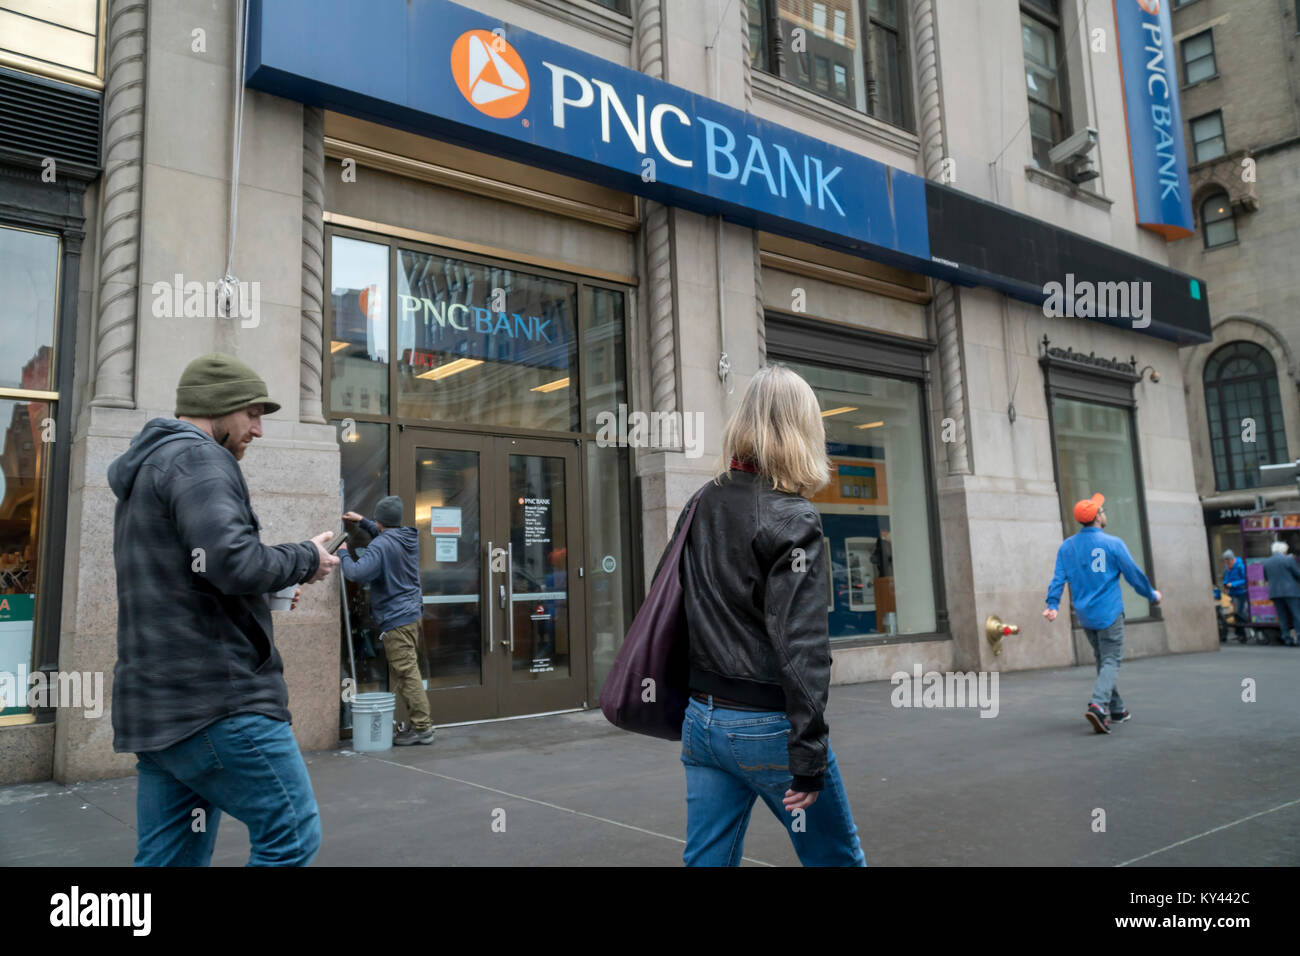 A branch of PNC Bank in New York on Thursday, January 11, 2018. PNC Financial Services Group, Inc. is scheduled - Stock Image